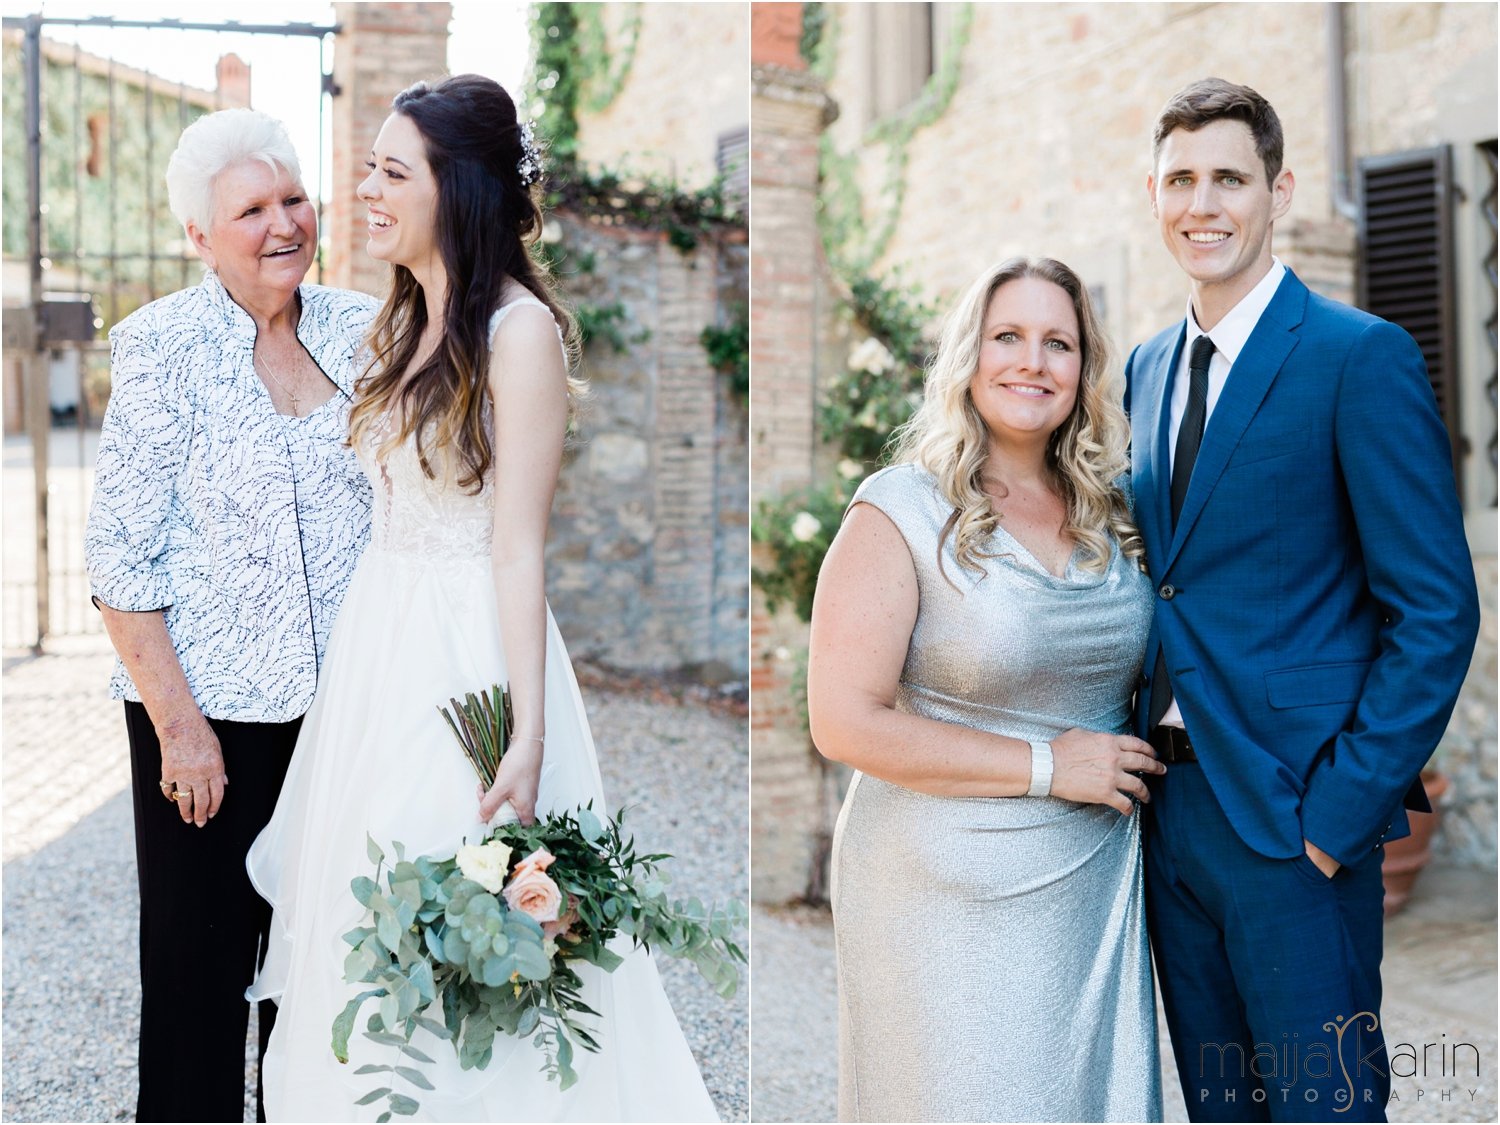 Castelvecchi-Tuscany-Wedding-Maija-Karin-Photography_0041.jpg